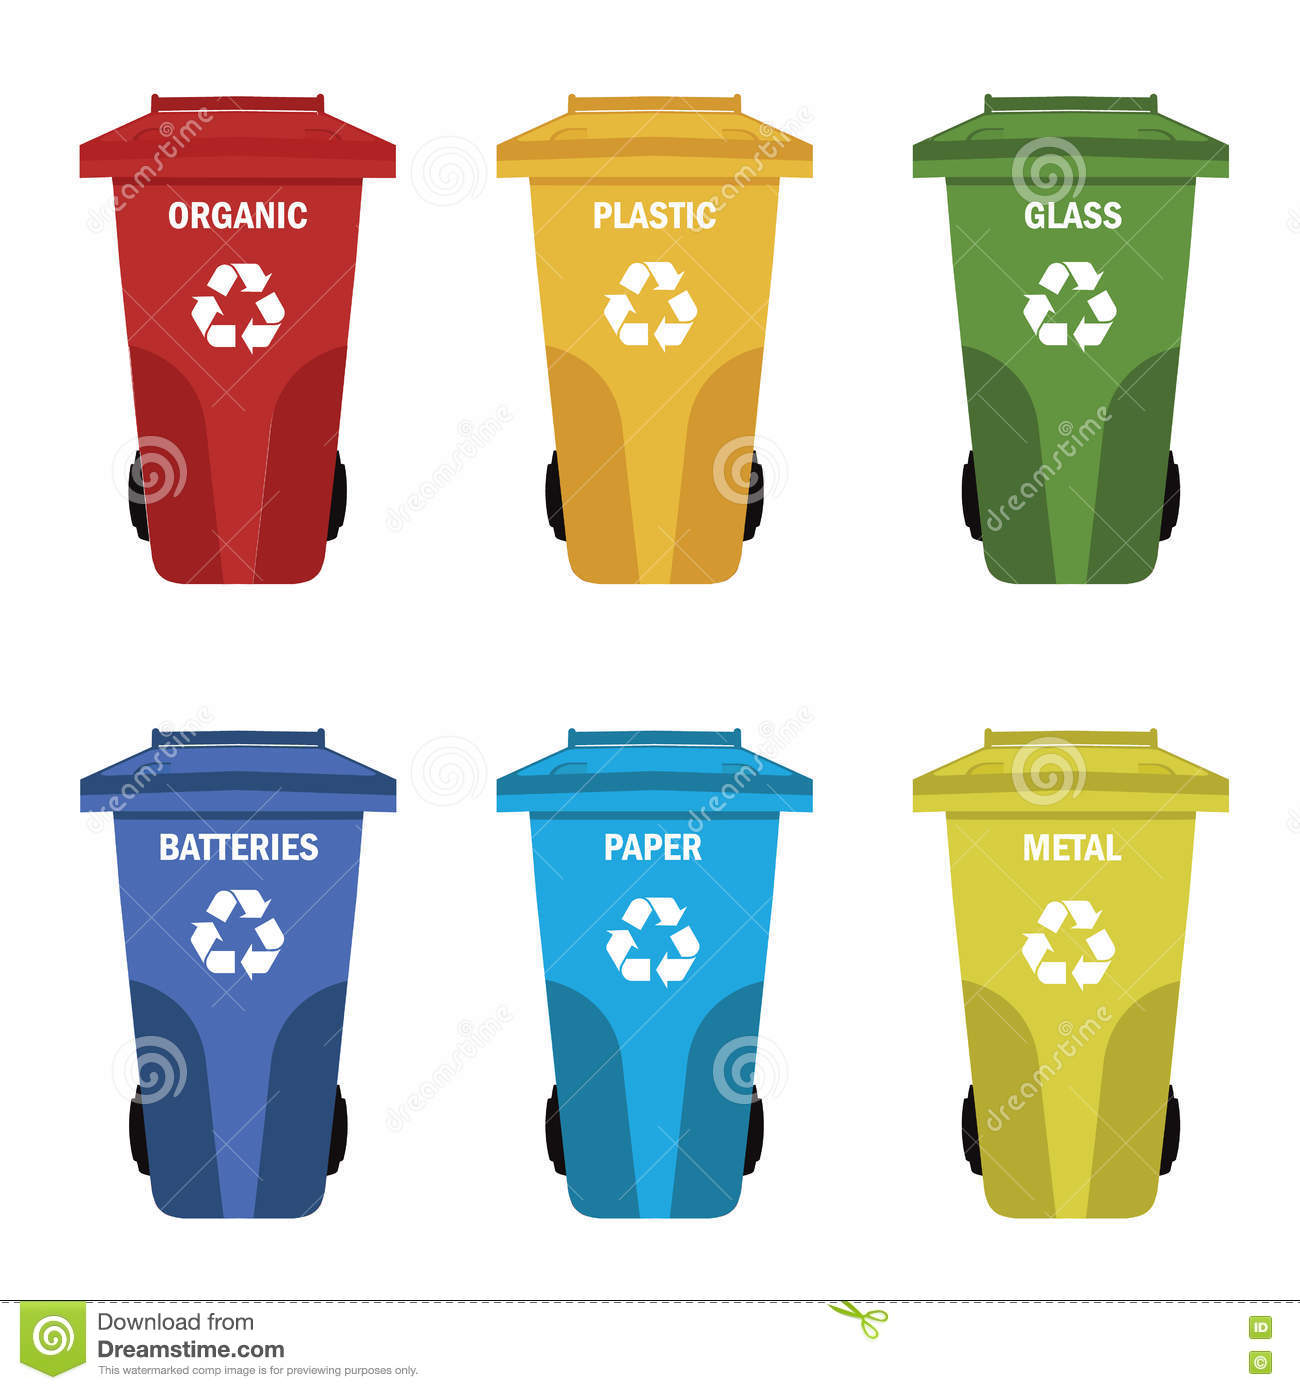 the two major reasons for recycling waste materials A study of construction material waste management practices by construction  there are two fundamental reasons for reducing, reusing and recycling waste:.